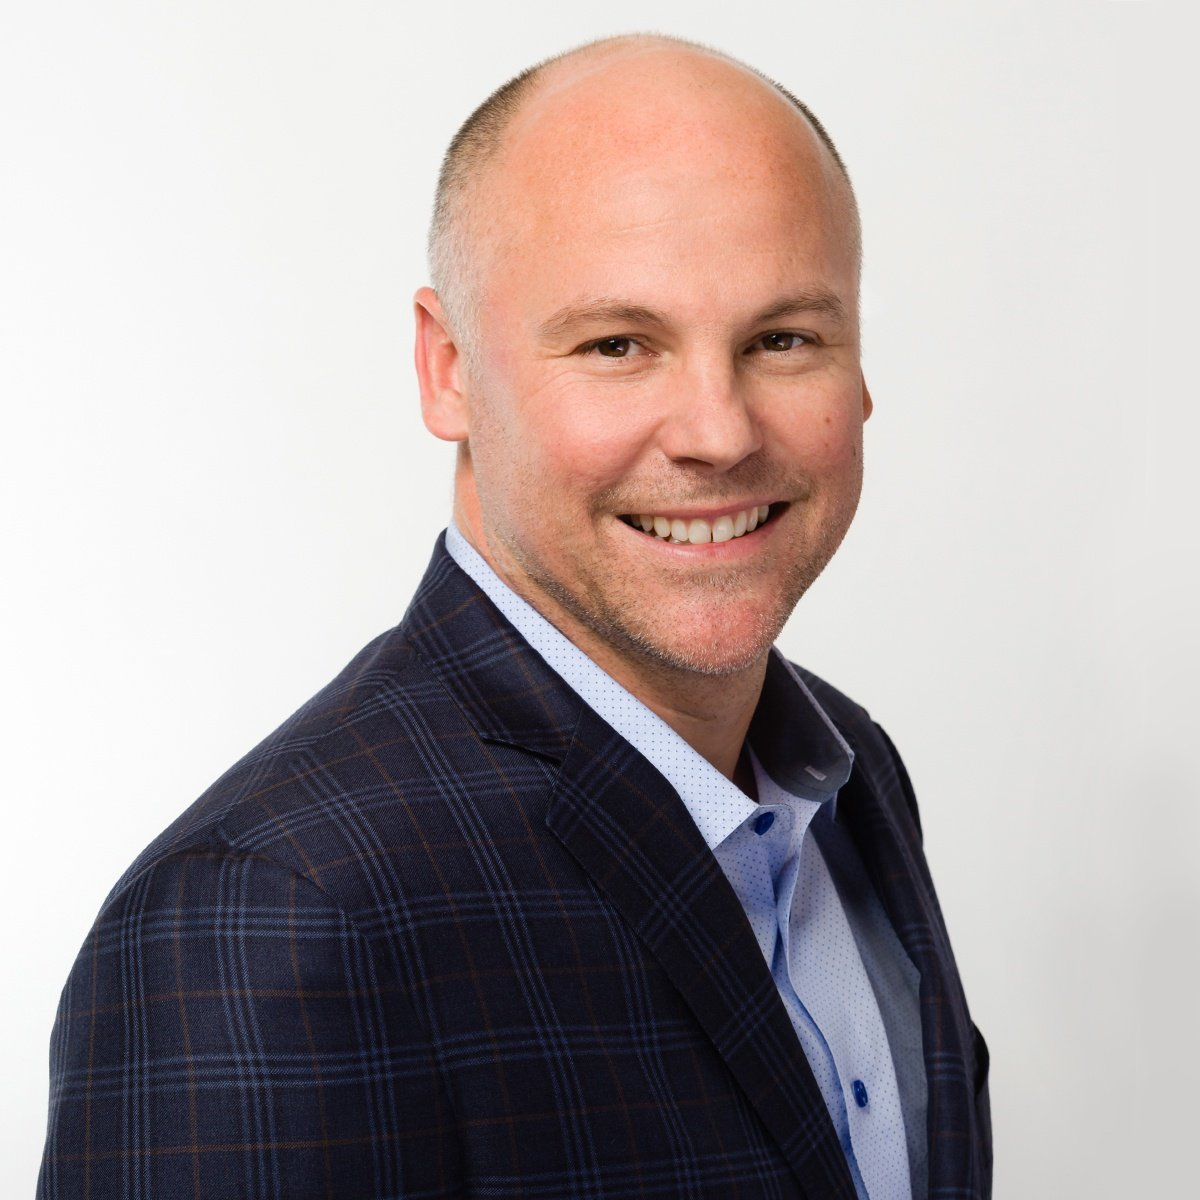 Converge Technology Solutions Corp. Announces the Appointment of Greg Berard as President of Converge